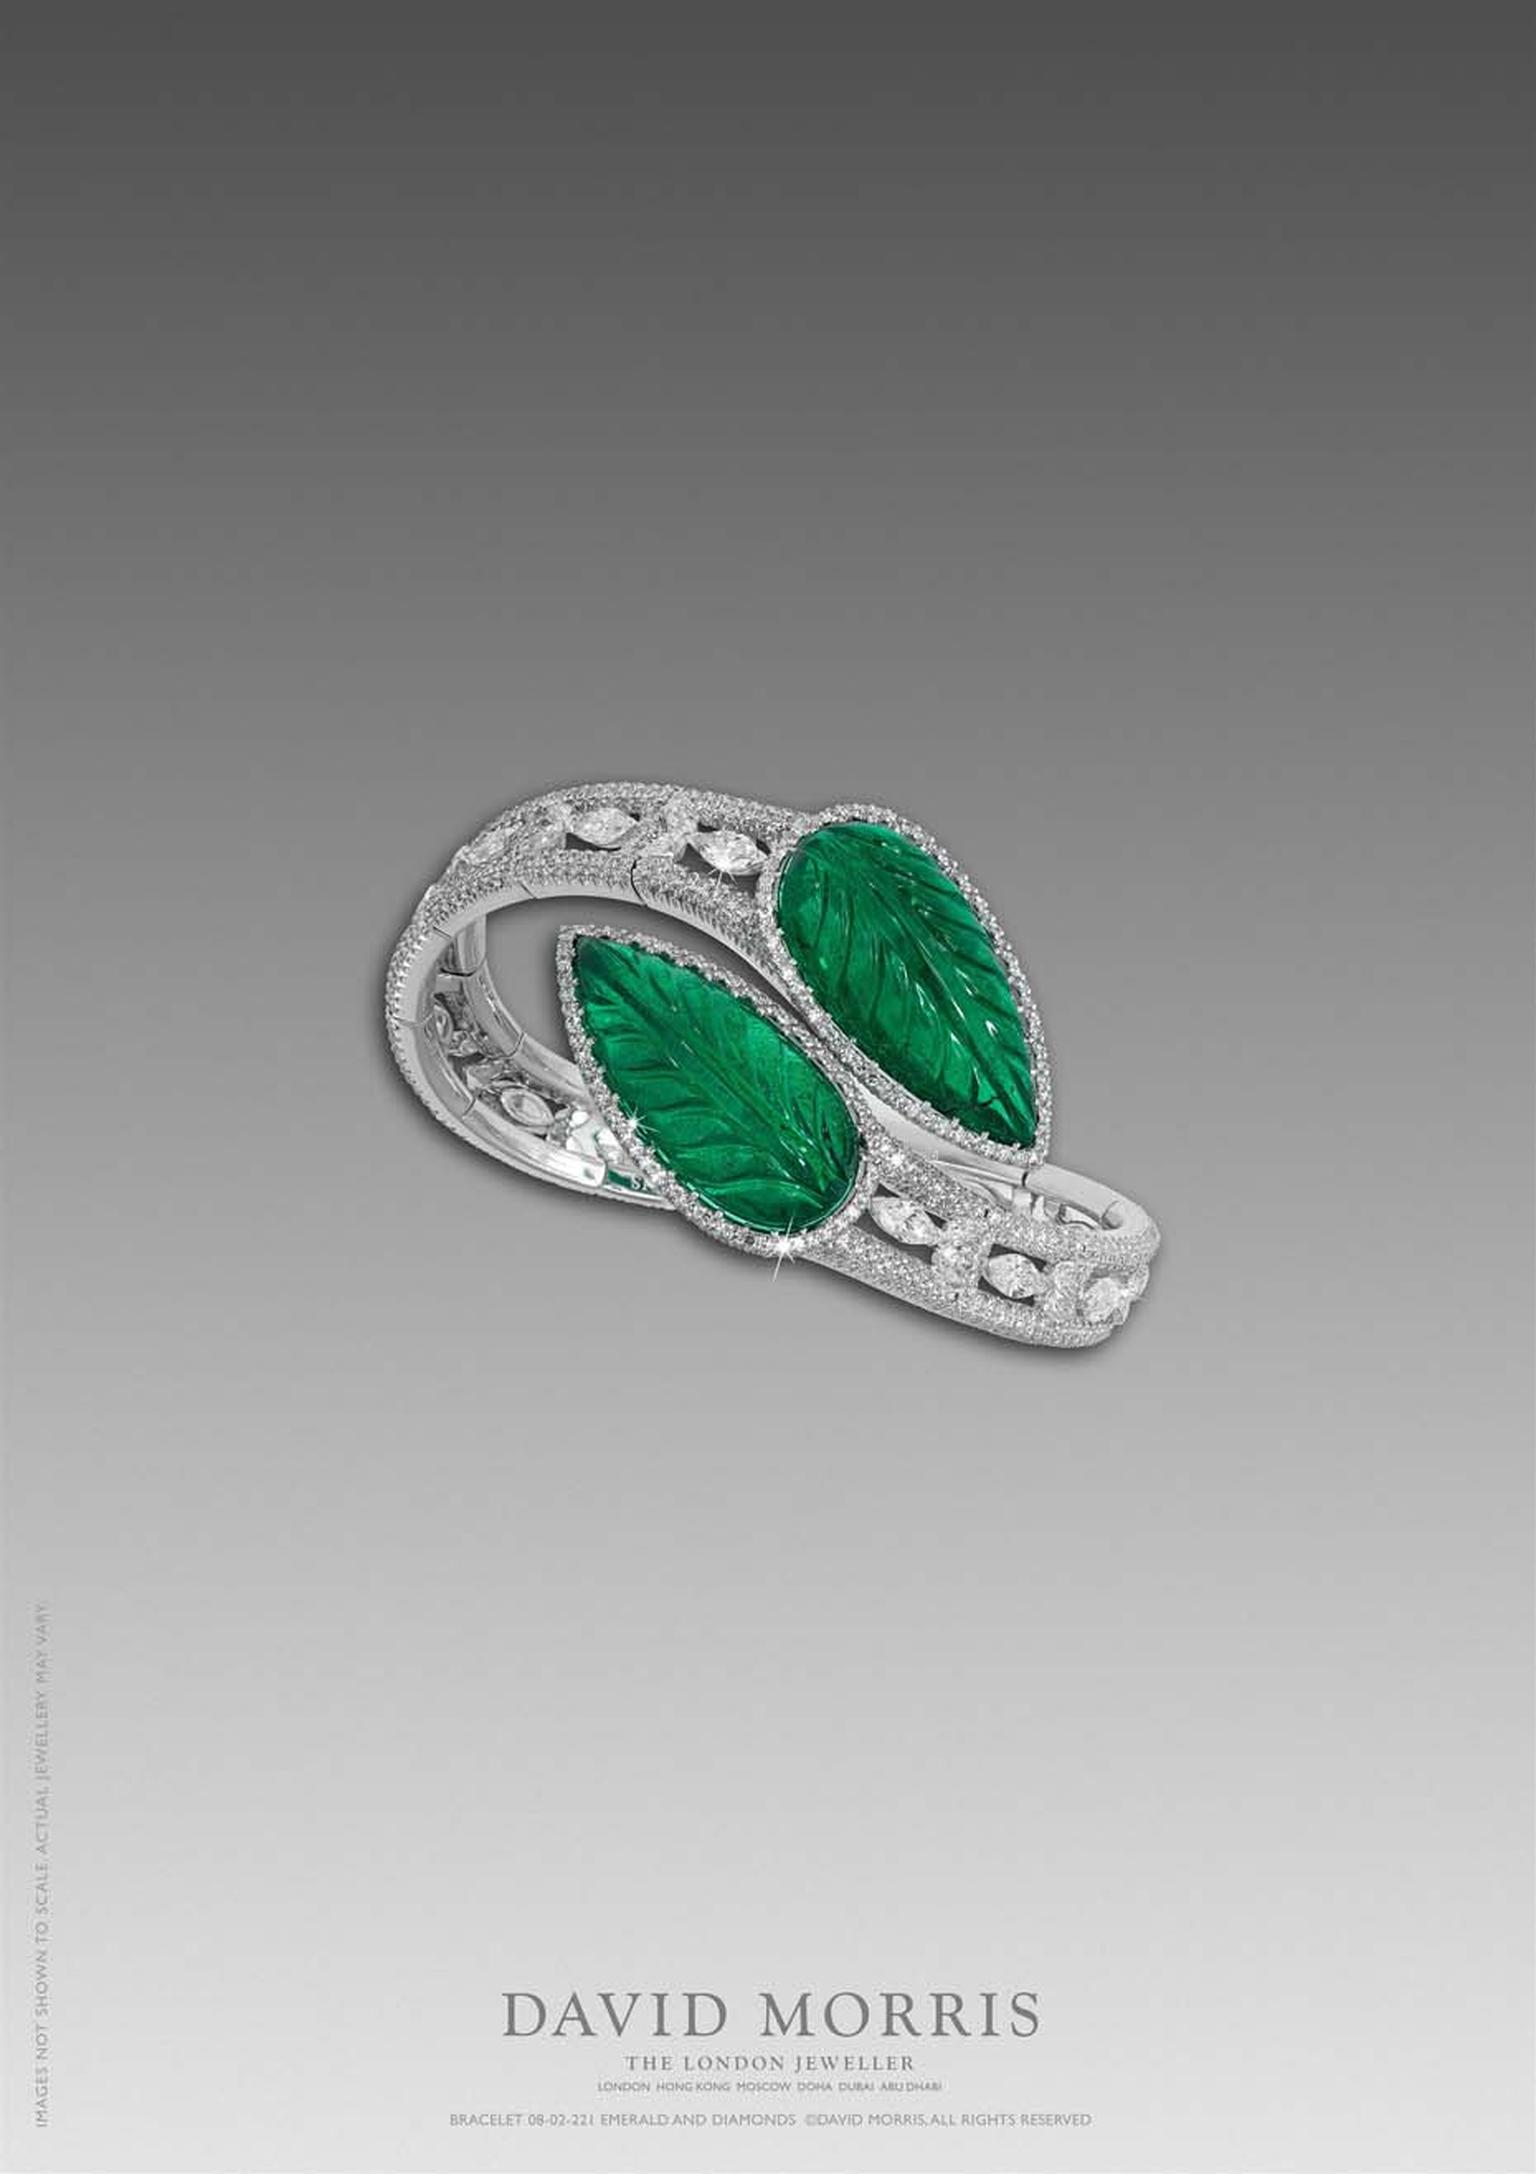 David Morris' use of coloured gemstones is showcased beautifully in this carved Zambian emerald flexible bangle, with marquise and pear shape motifs and white diamond micro-set diamonds.